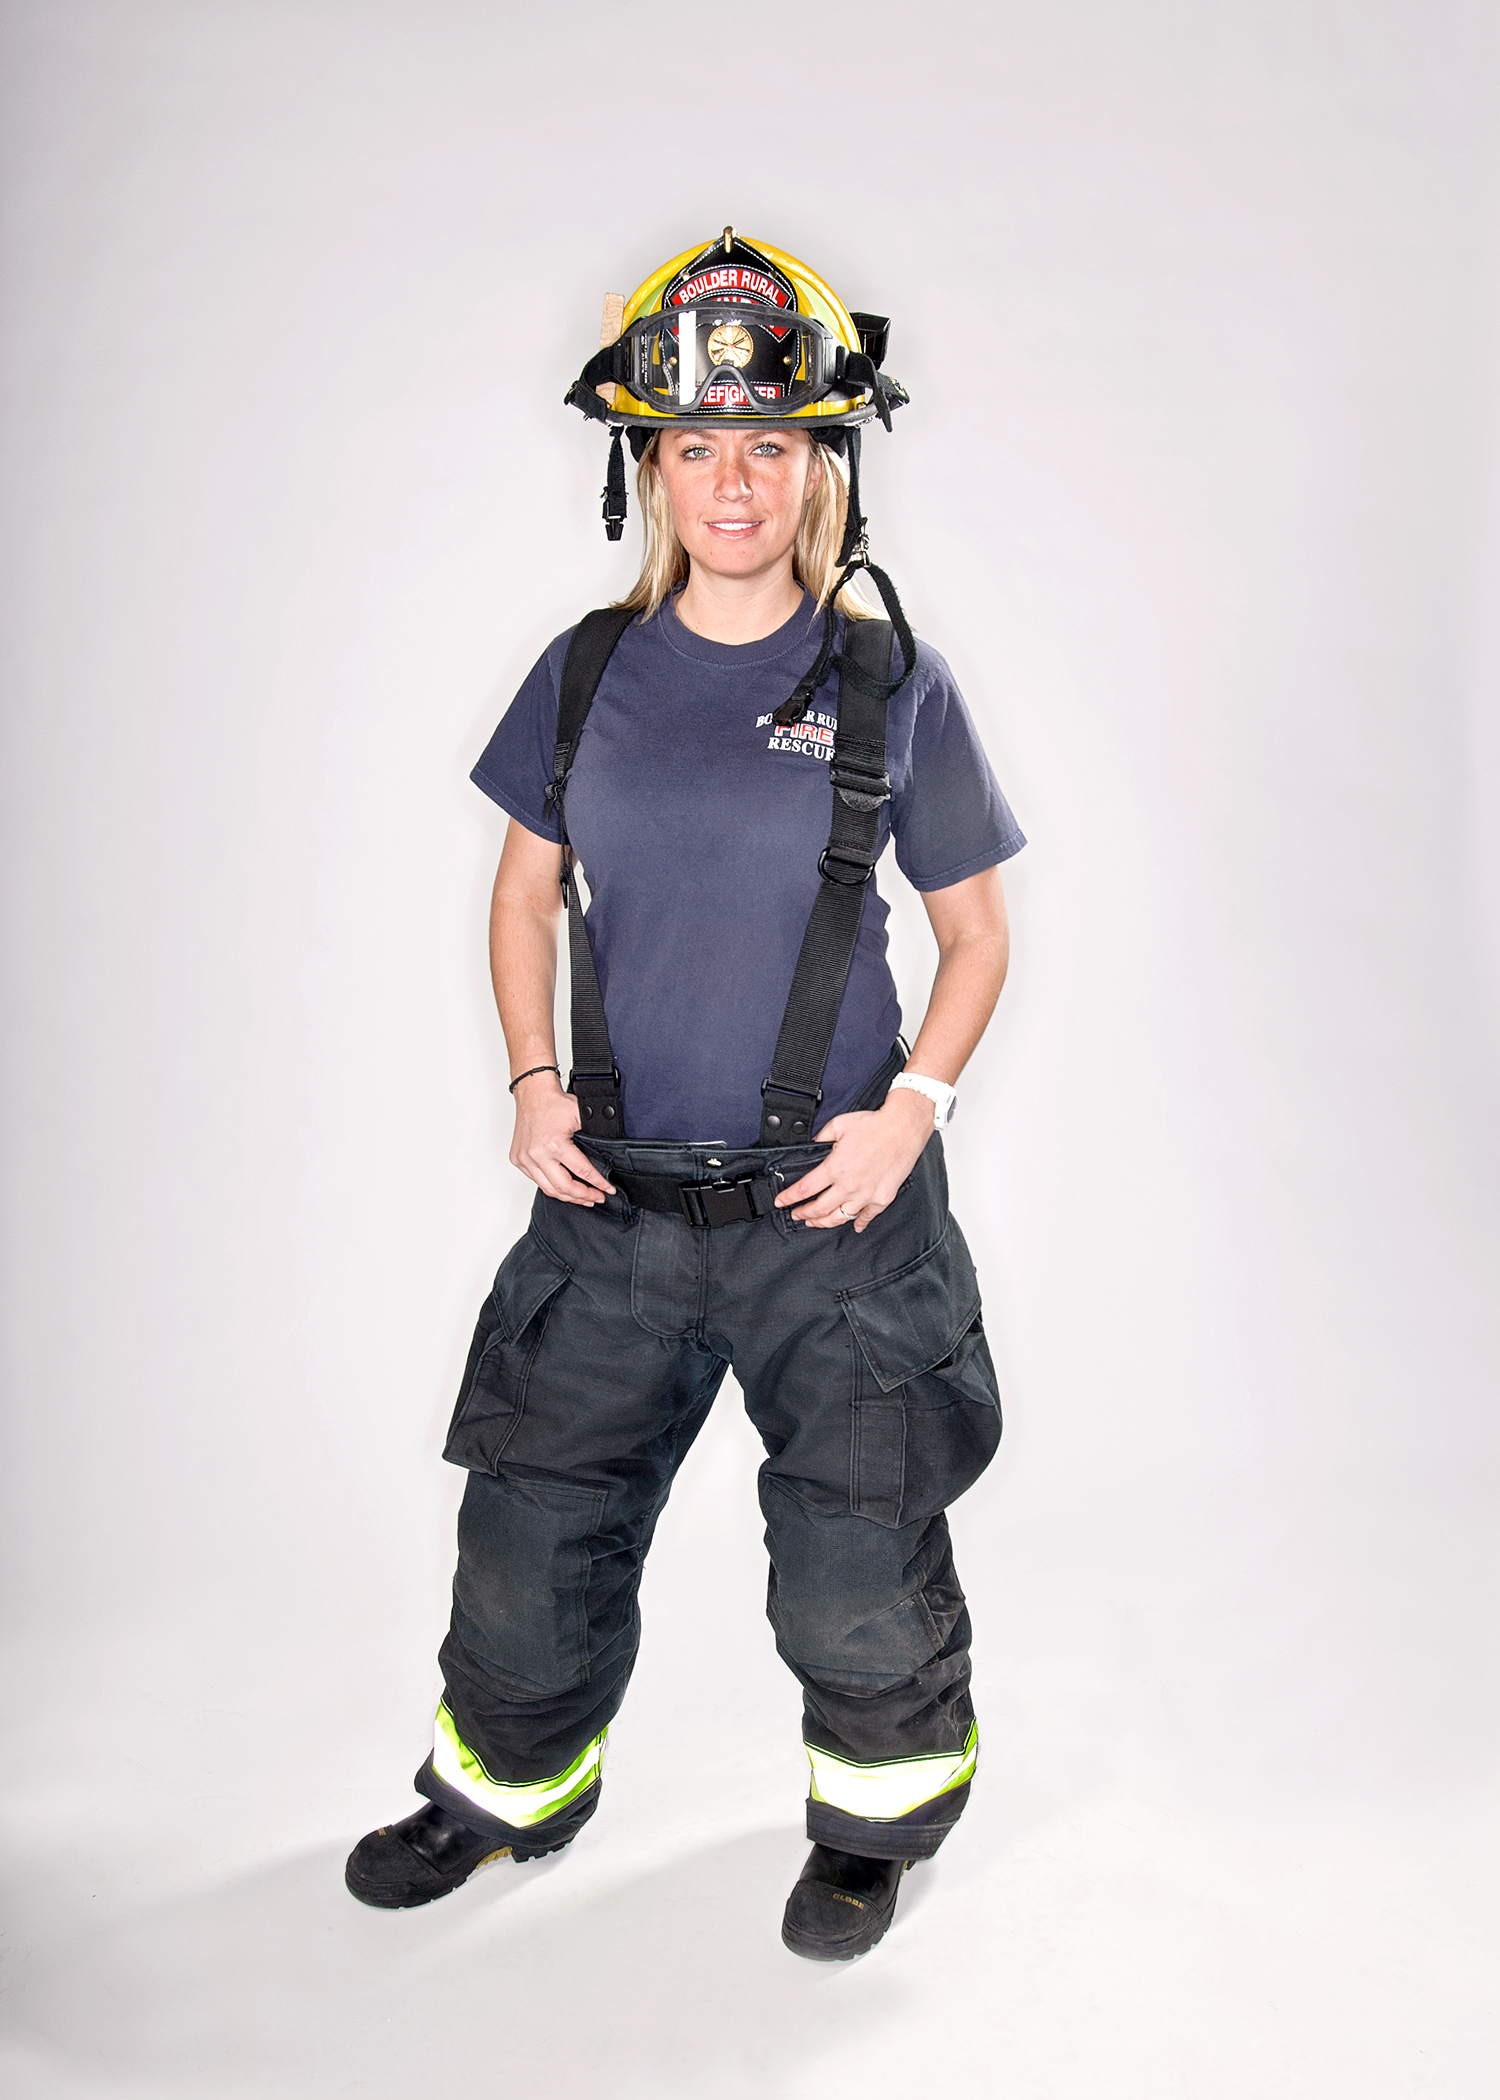 Stephanie  Engineer & Paramedic at the Boulder Rural Fire Department.